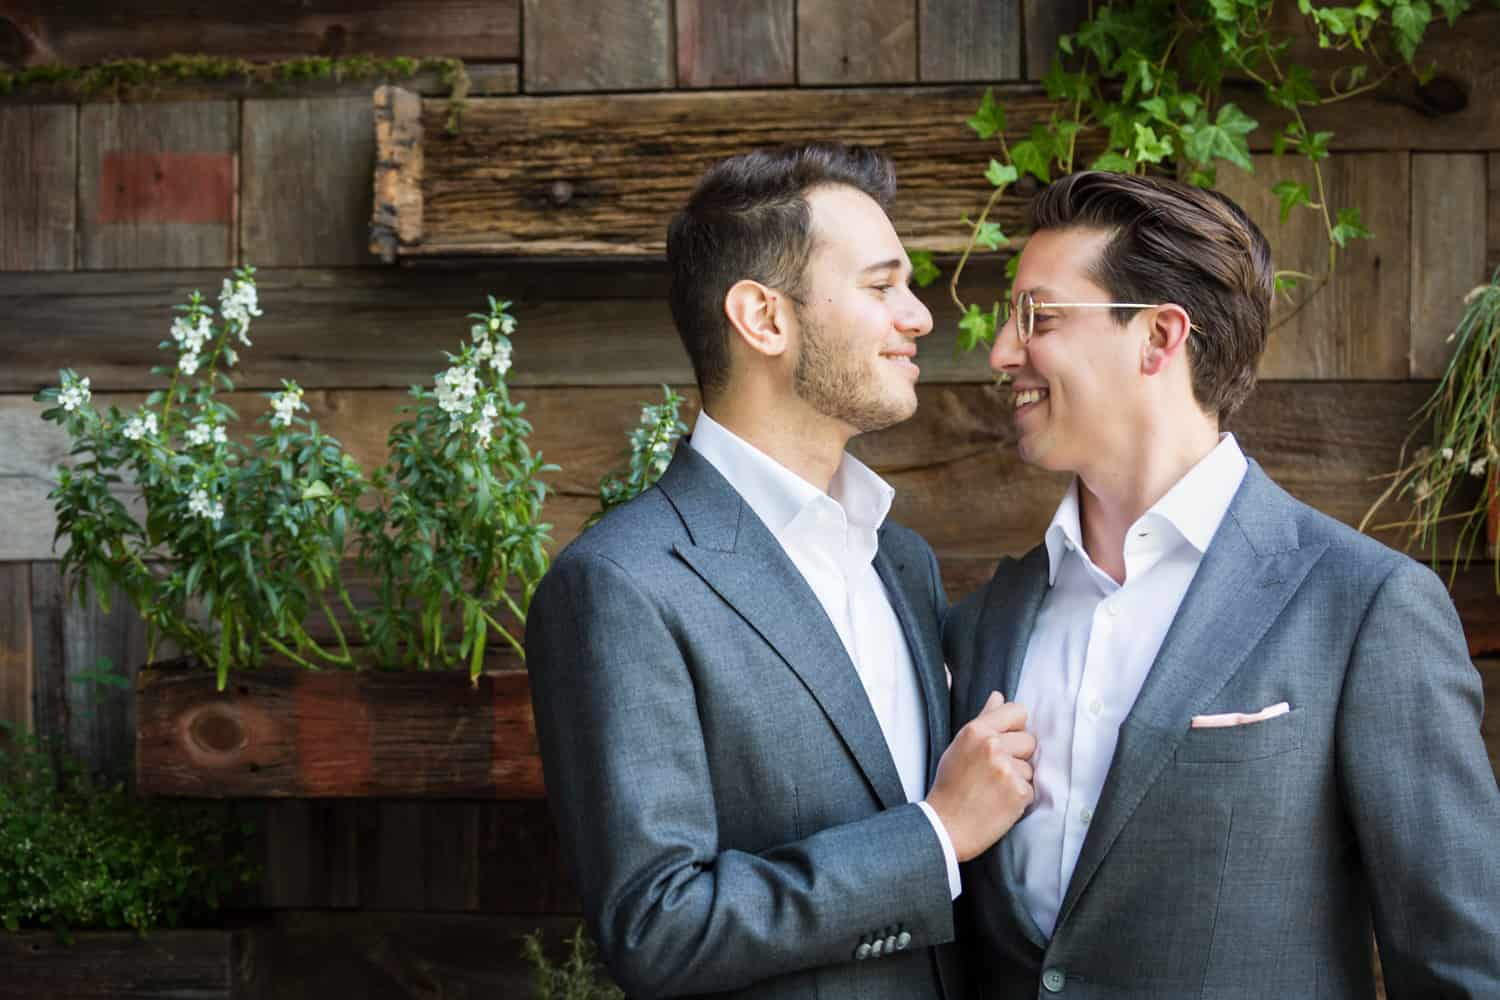 Greenpoint Loft wedding photos of two grooms in front of wooden wall with plants